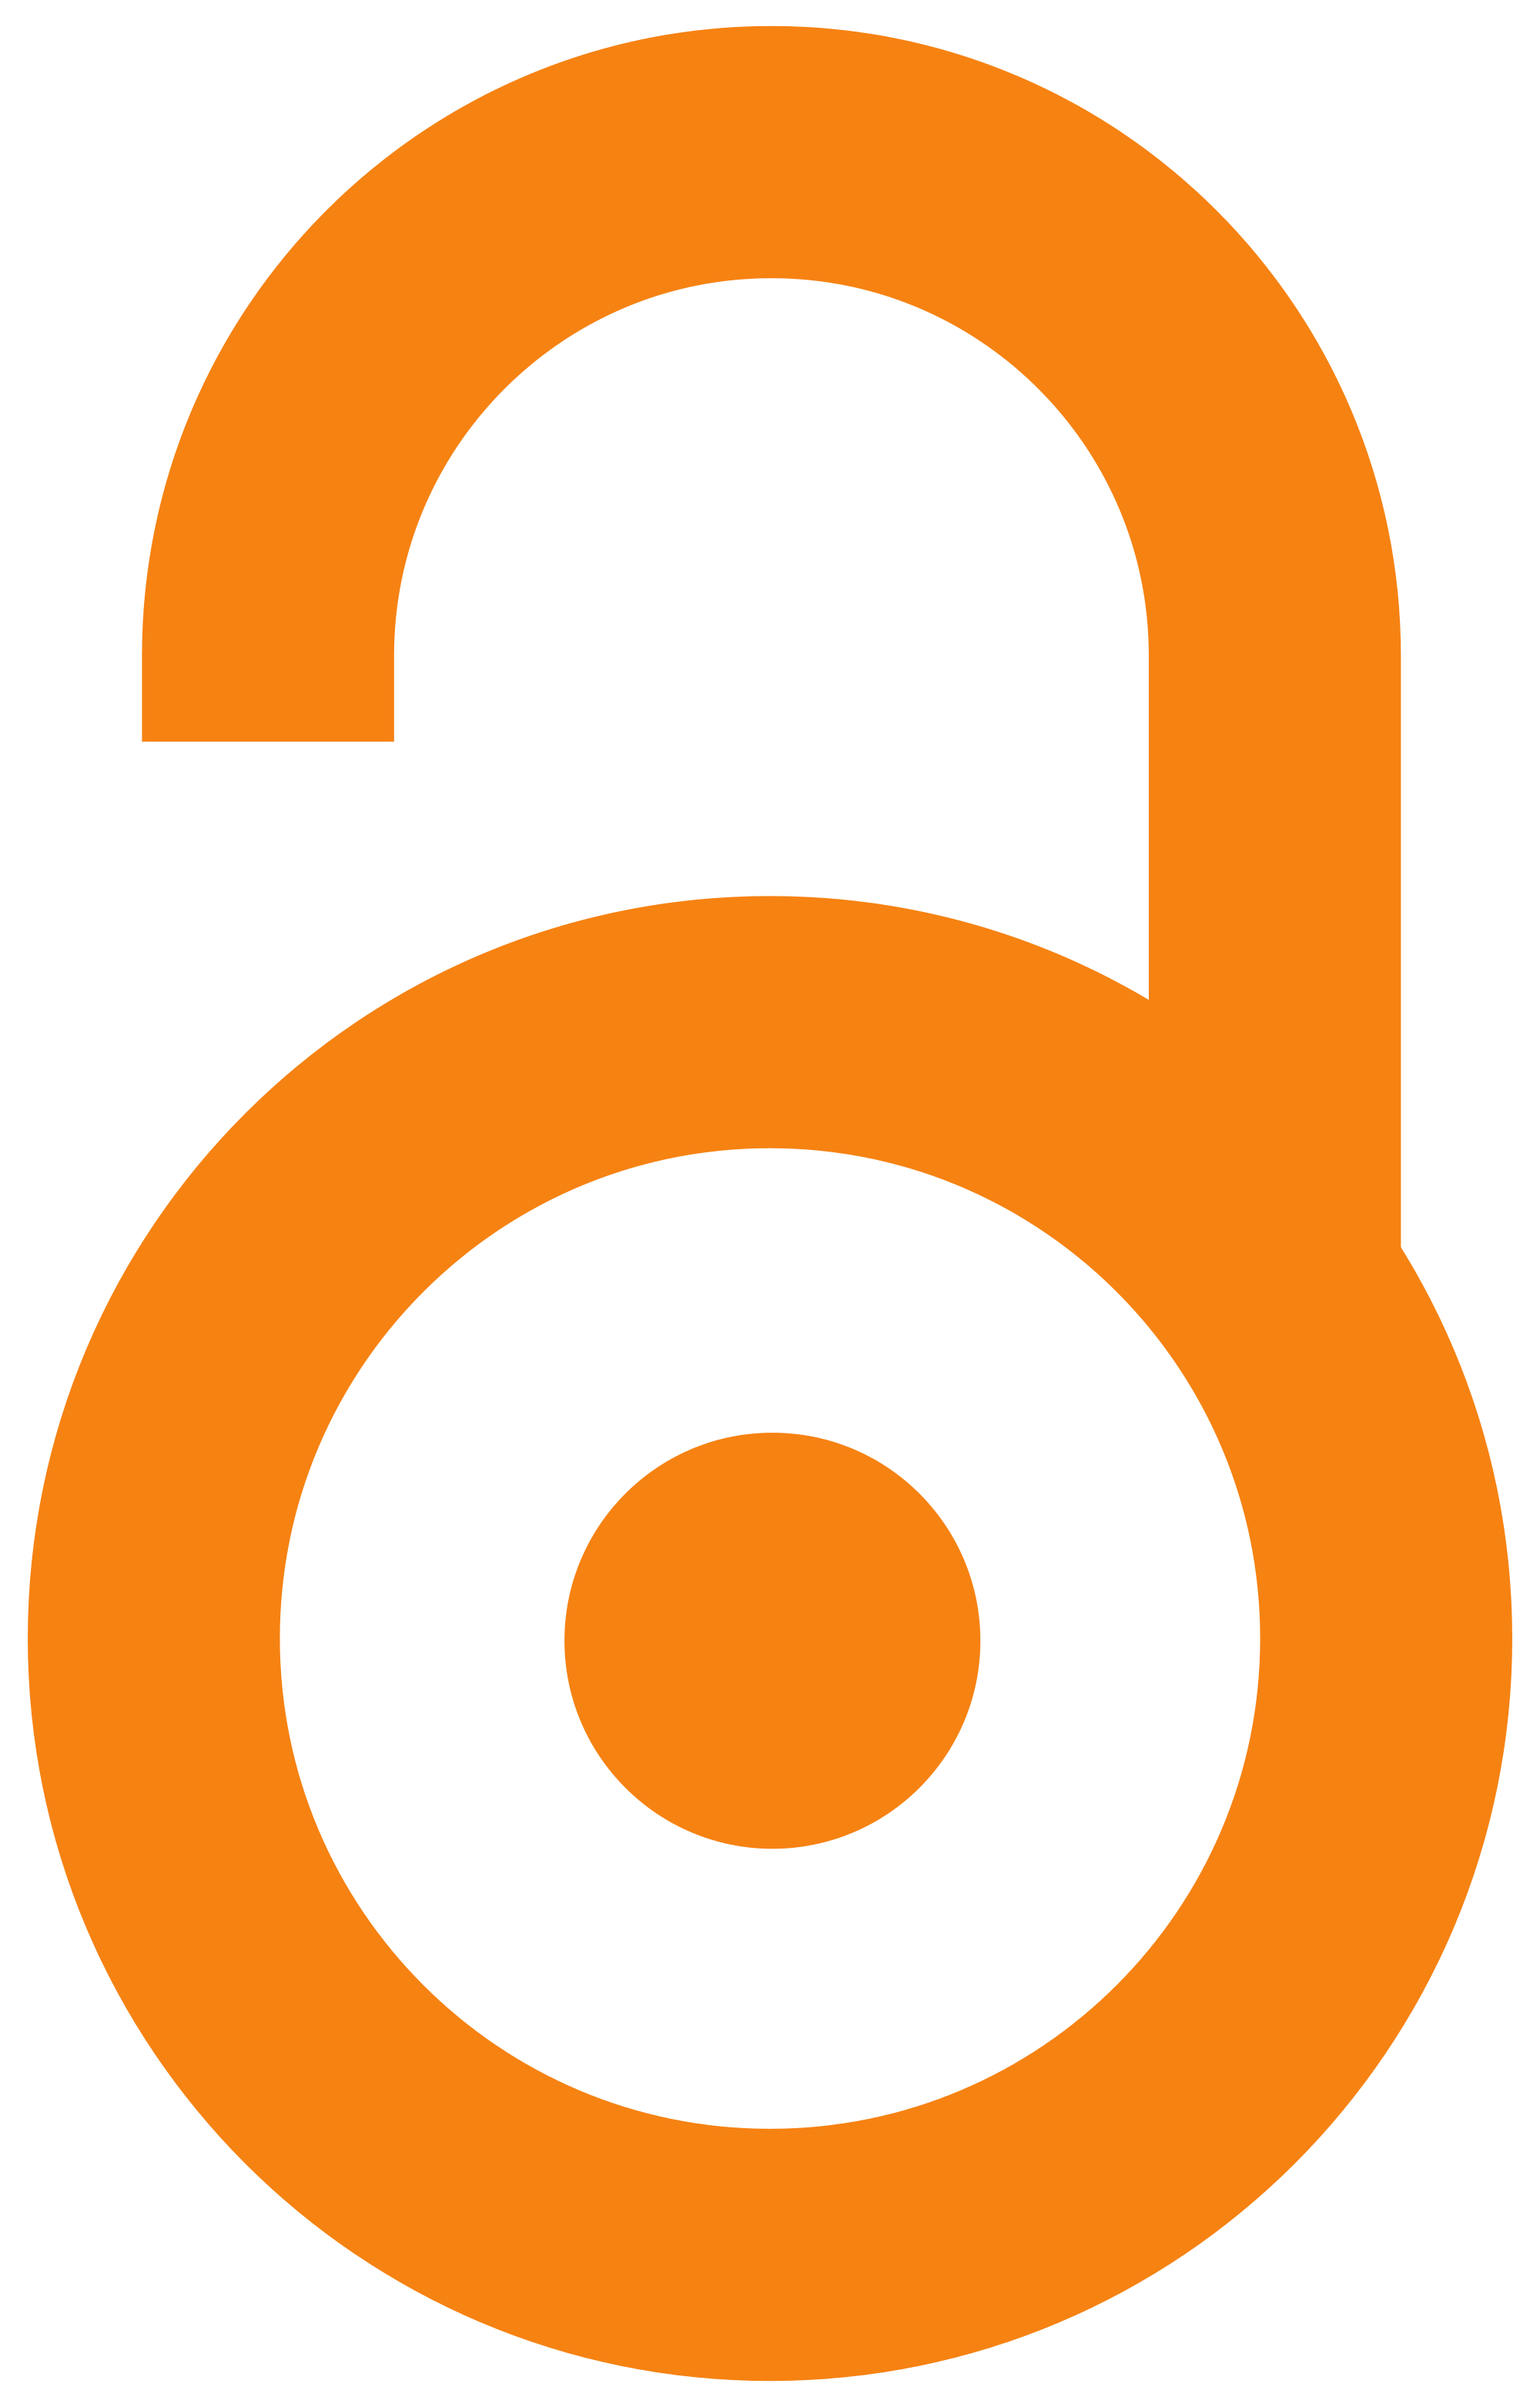 Svg transparency. File open access logo